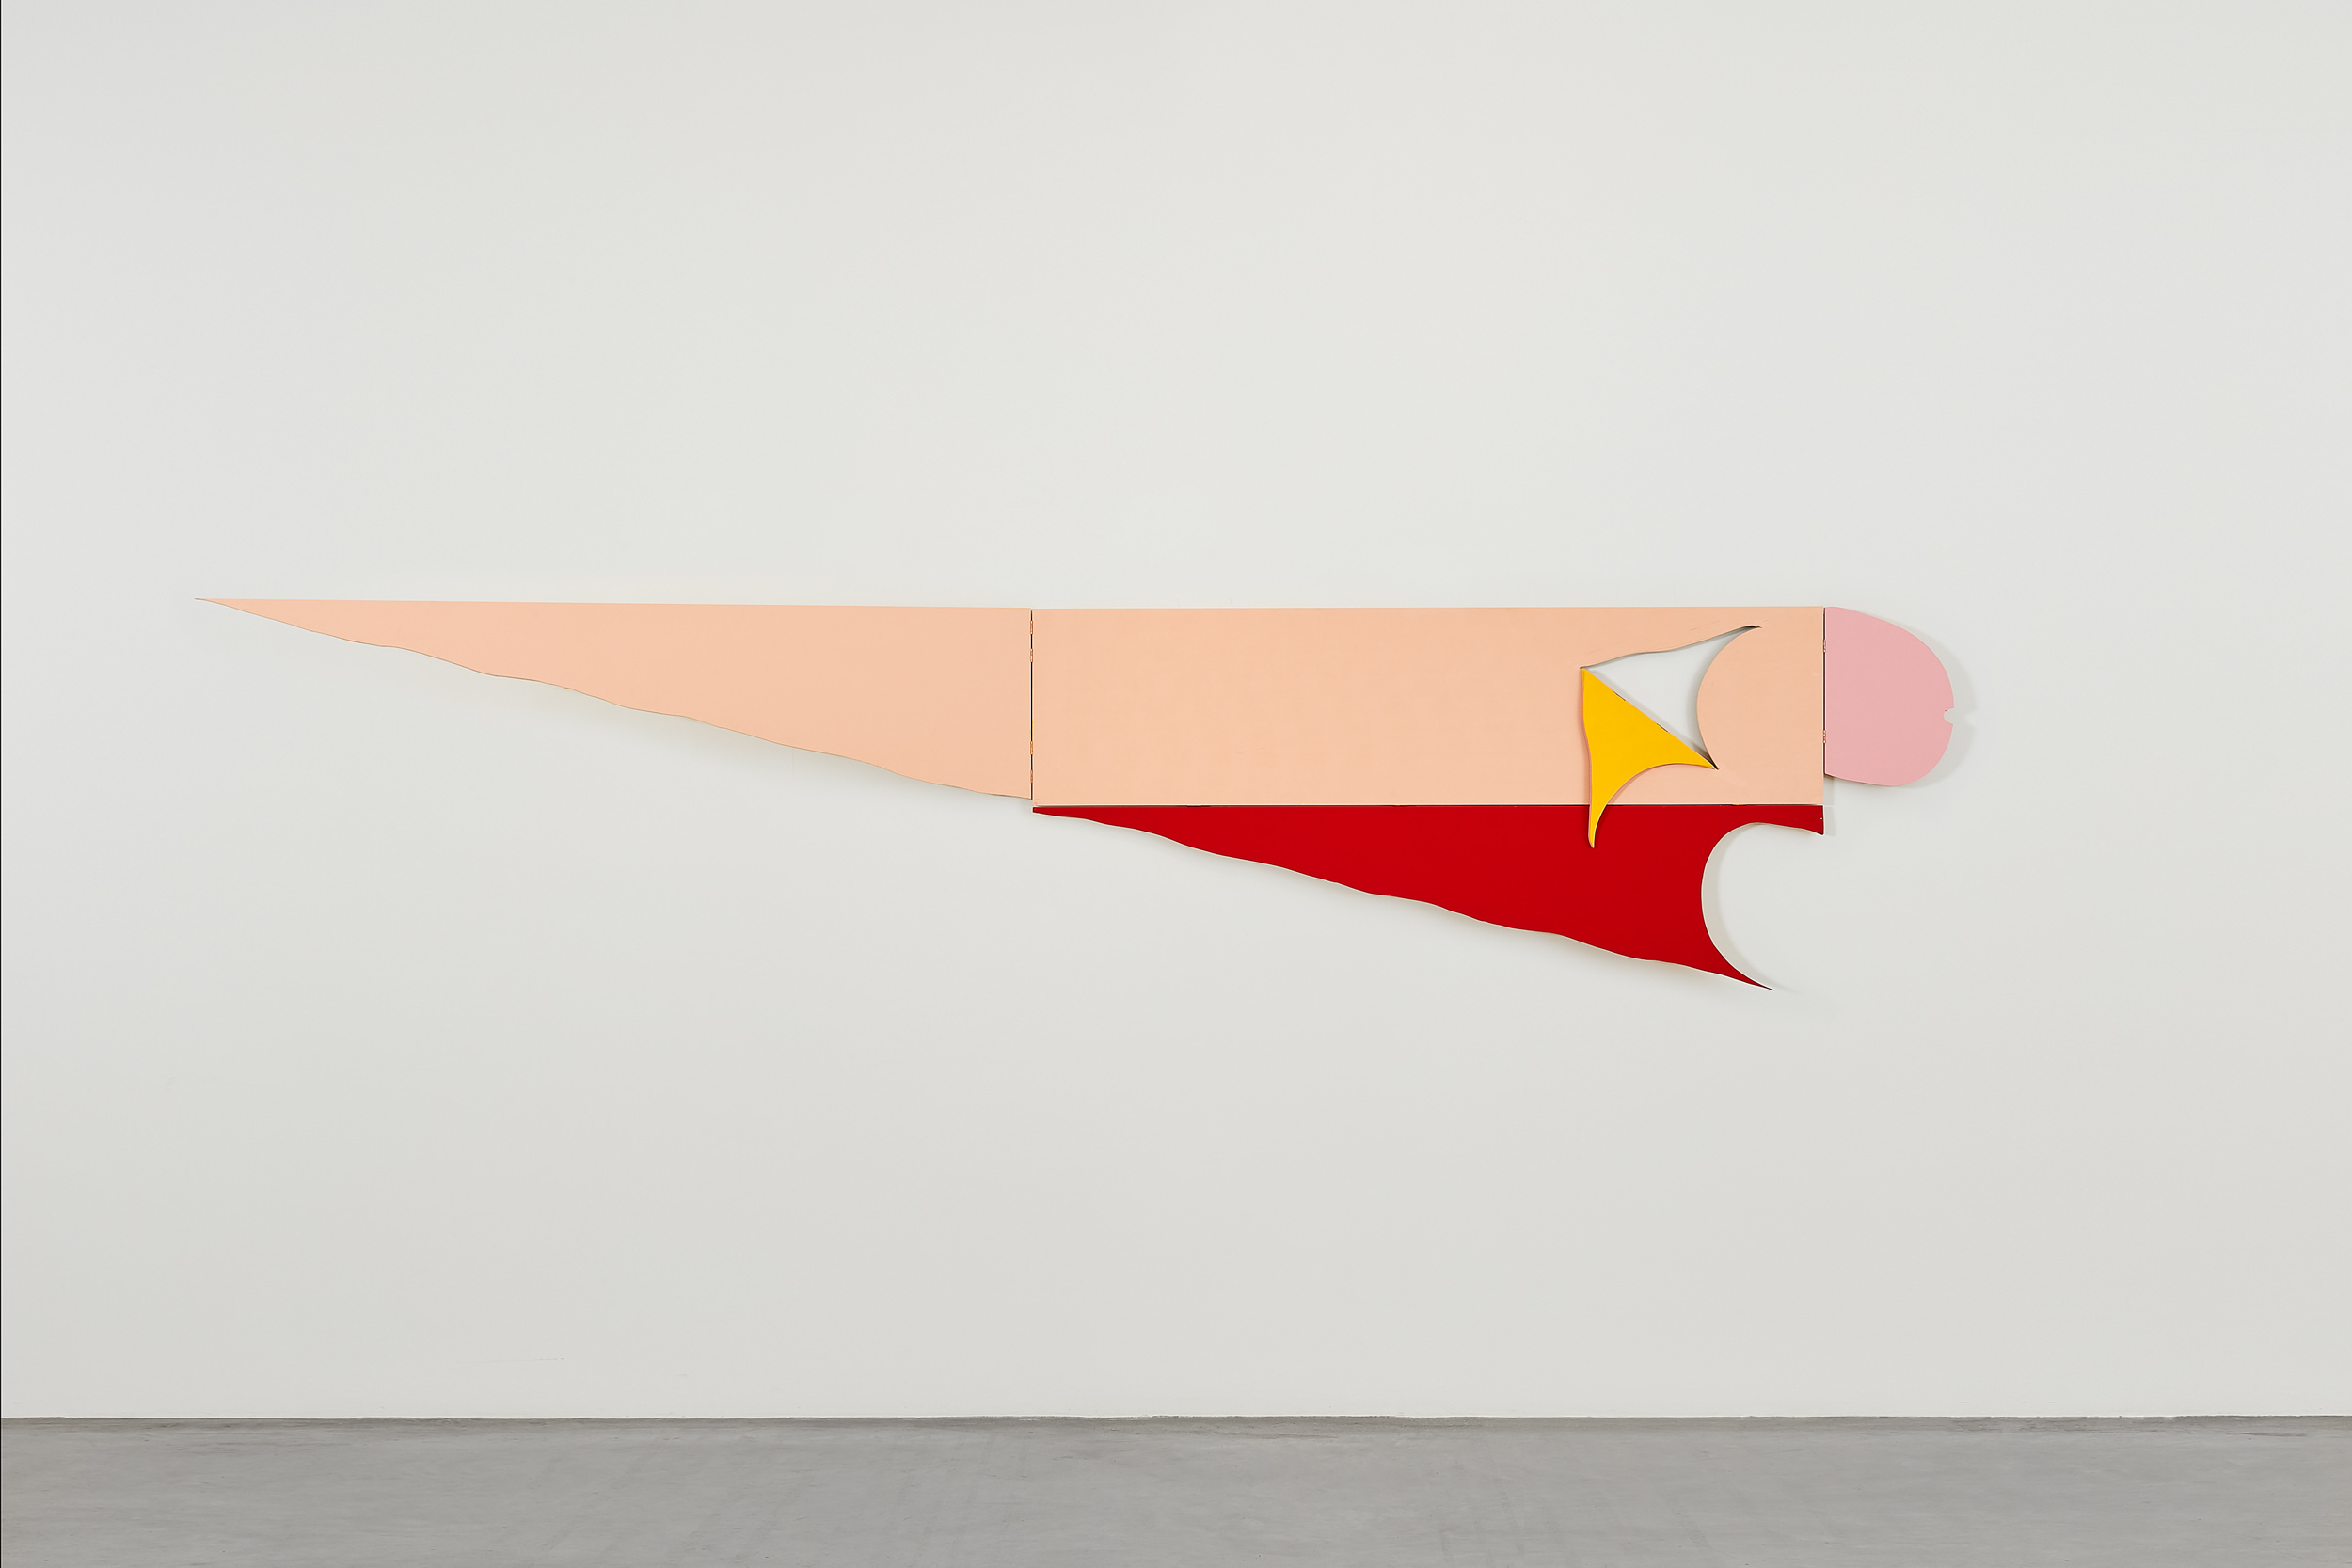 Katsumi Nakai, Untitled, 2011, acrylic on plywood, 45 x 180 cm : 85 x 385 cm v1